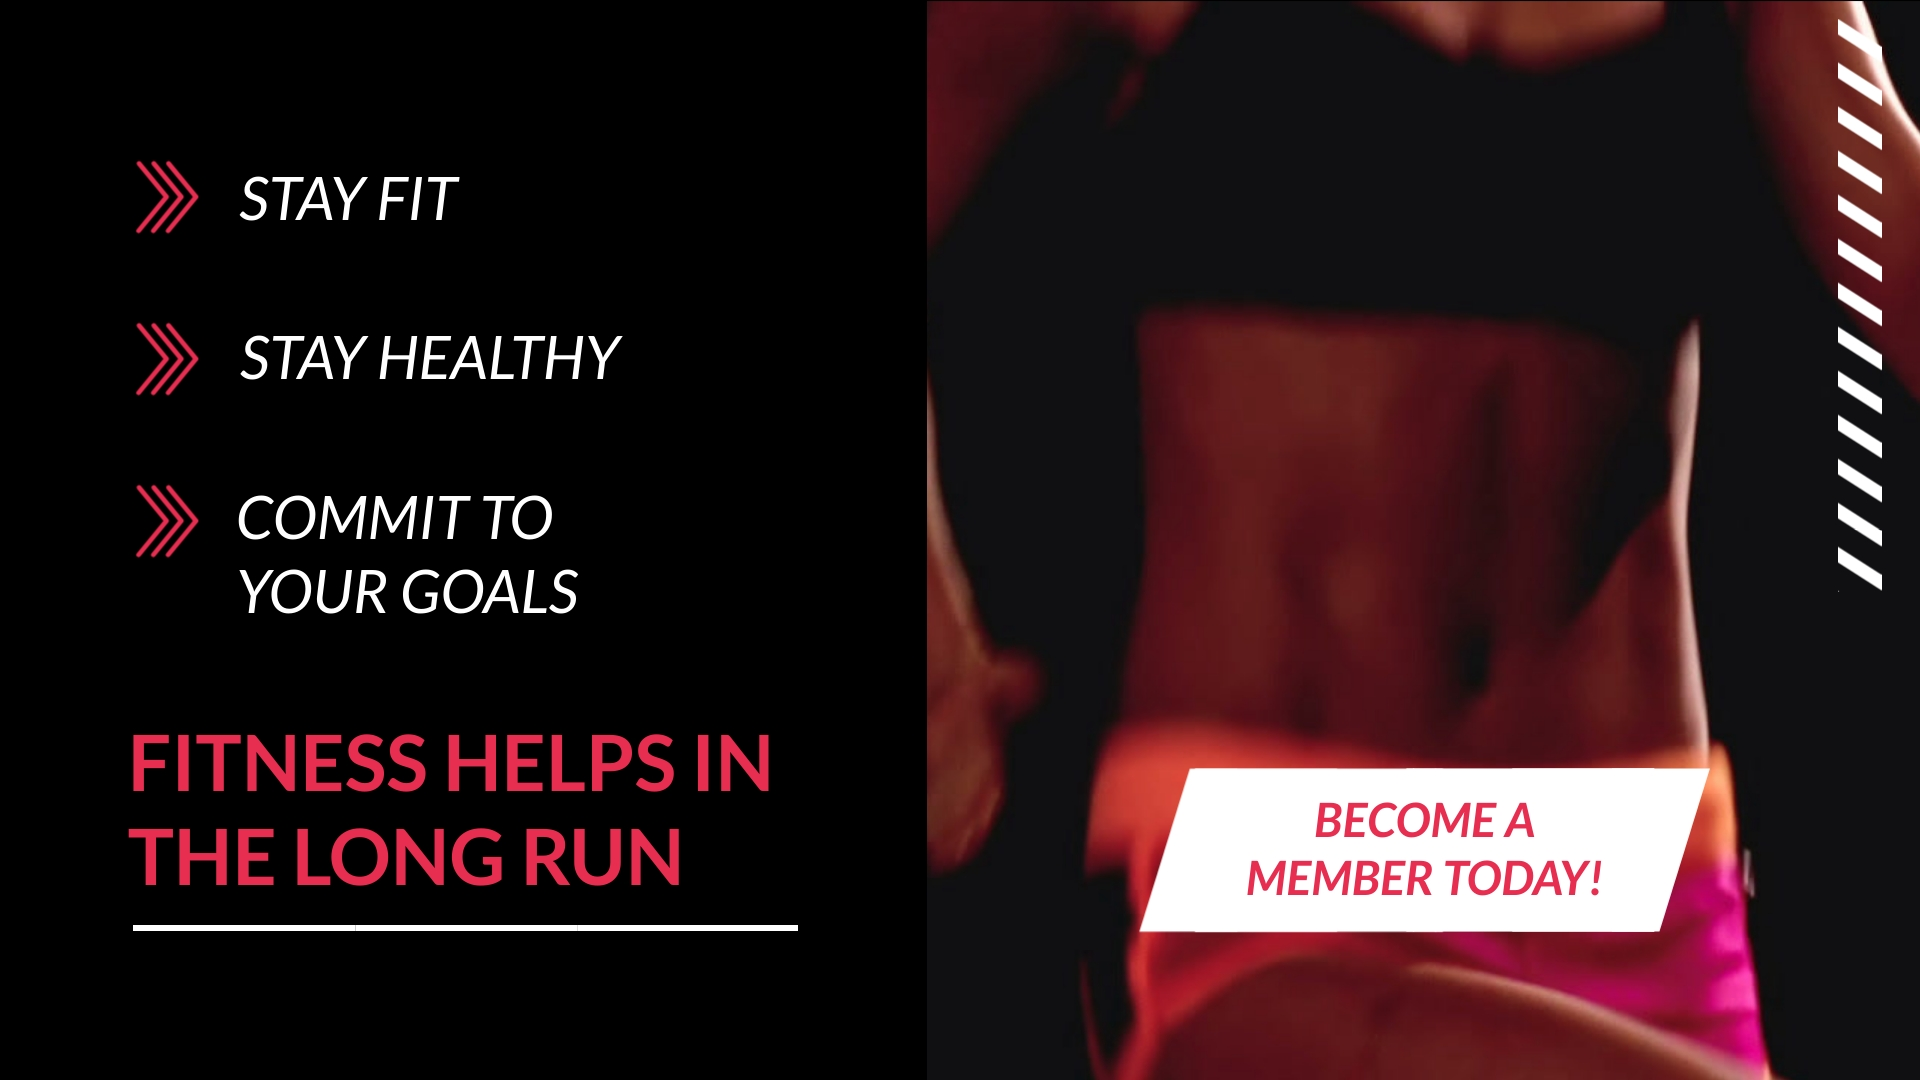 Gym - YouTube Video Ad Template